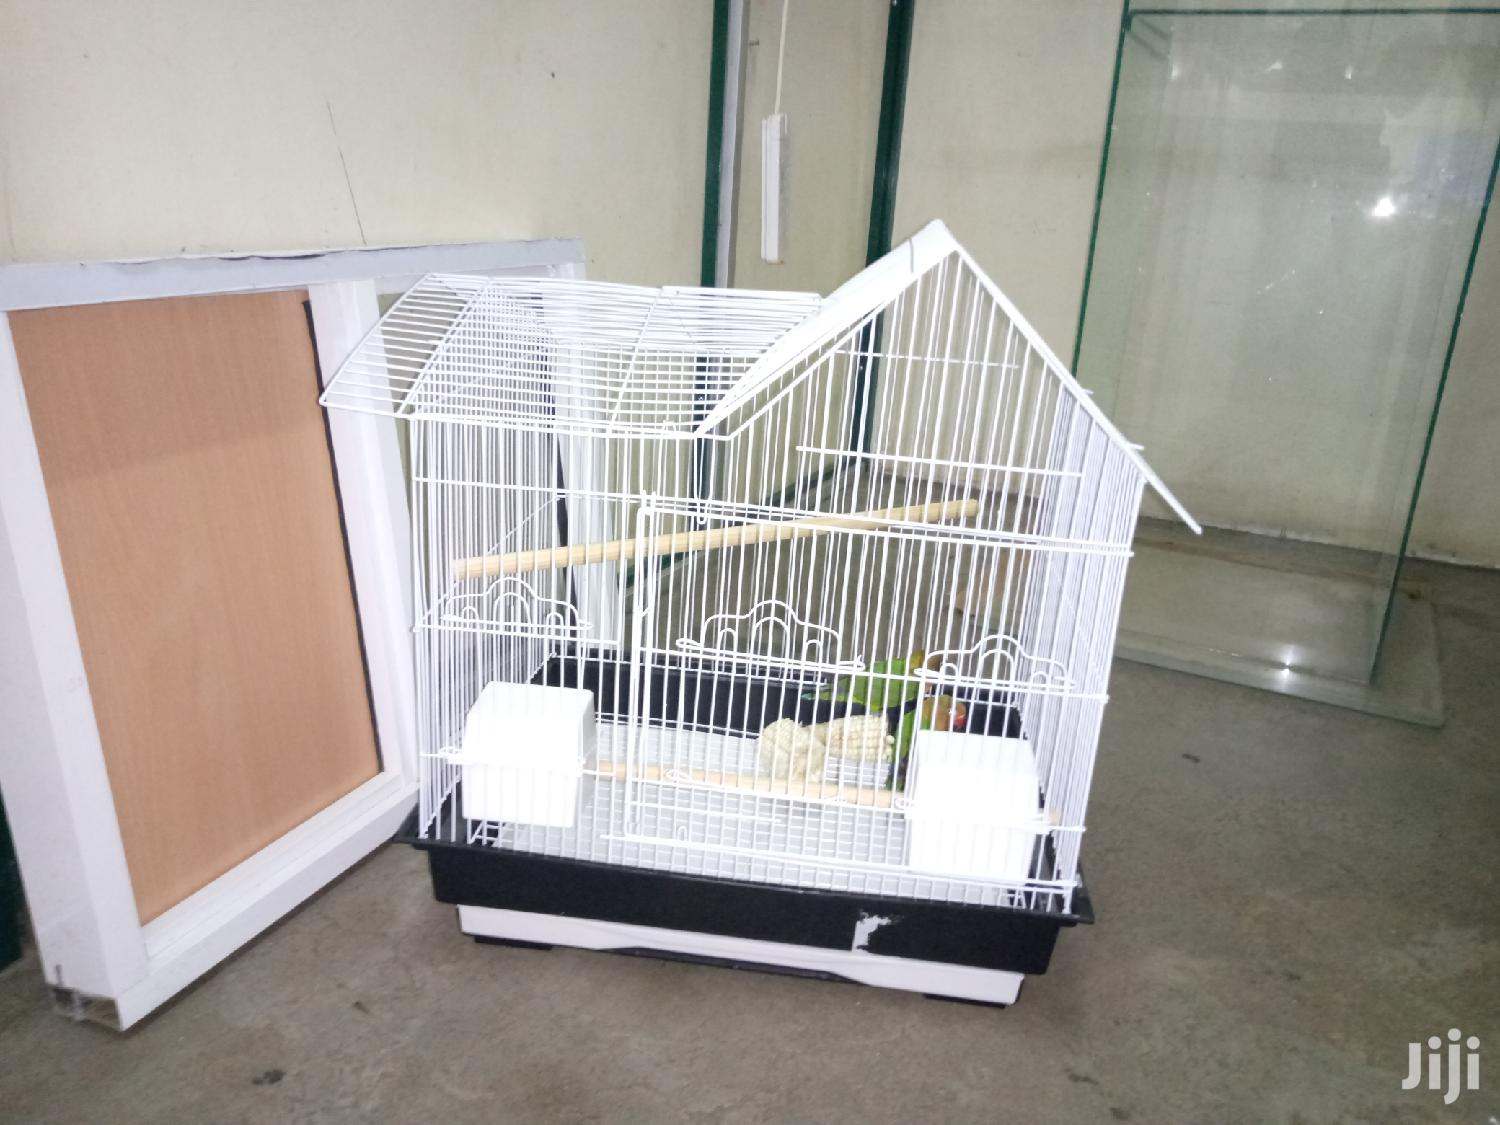 Cages For Birds